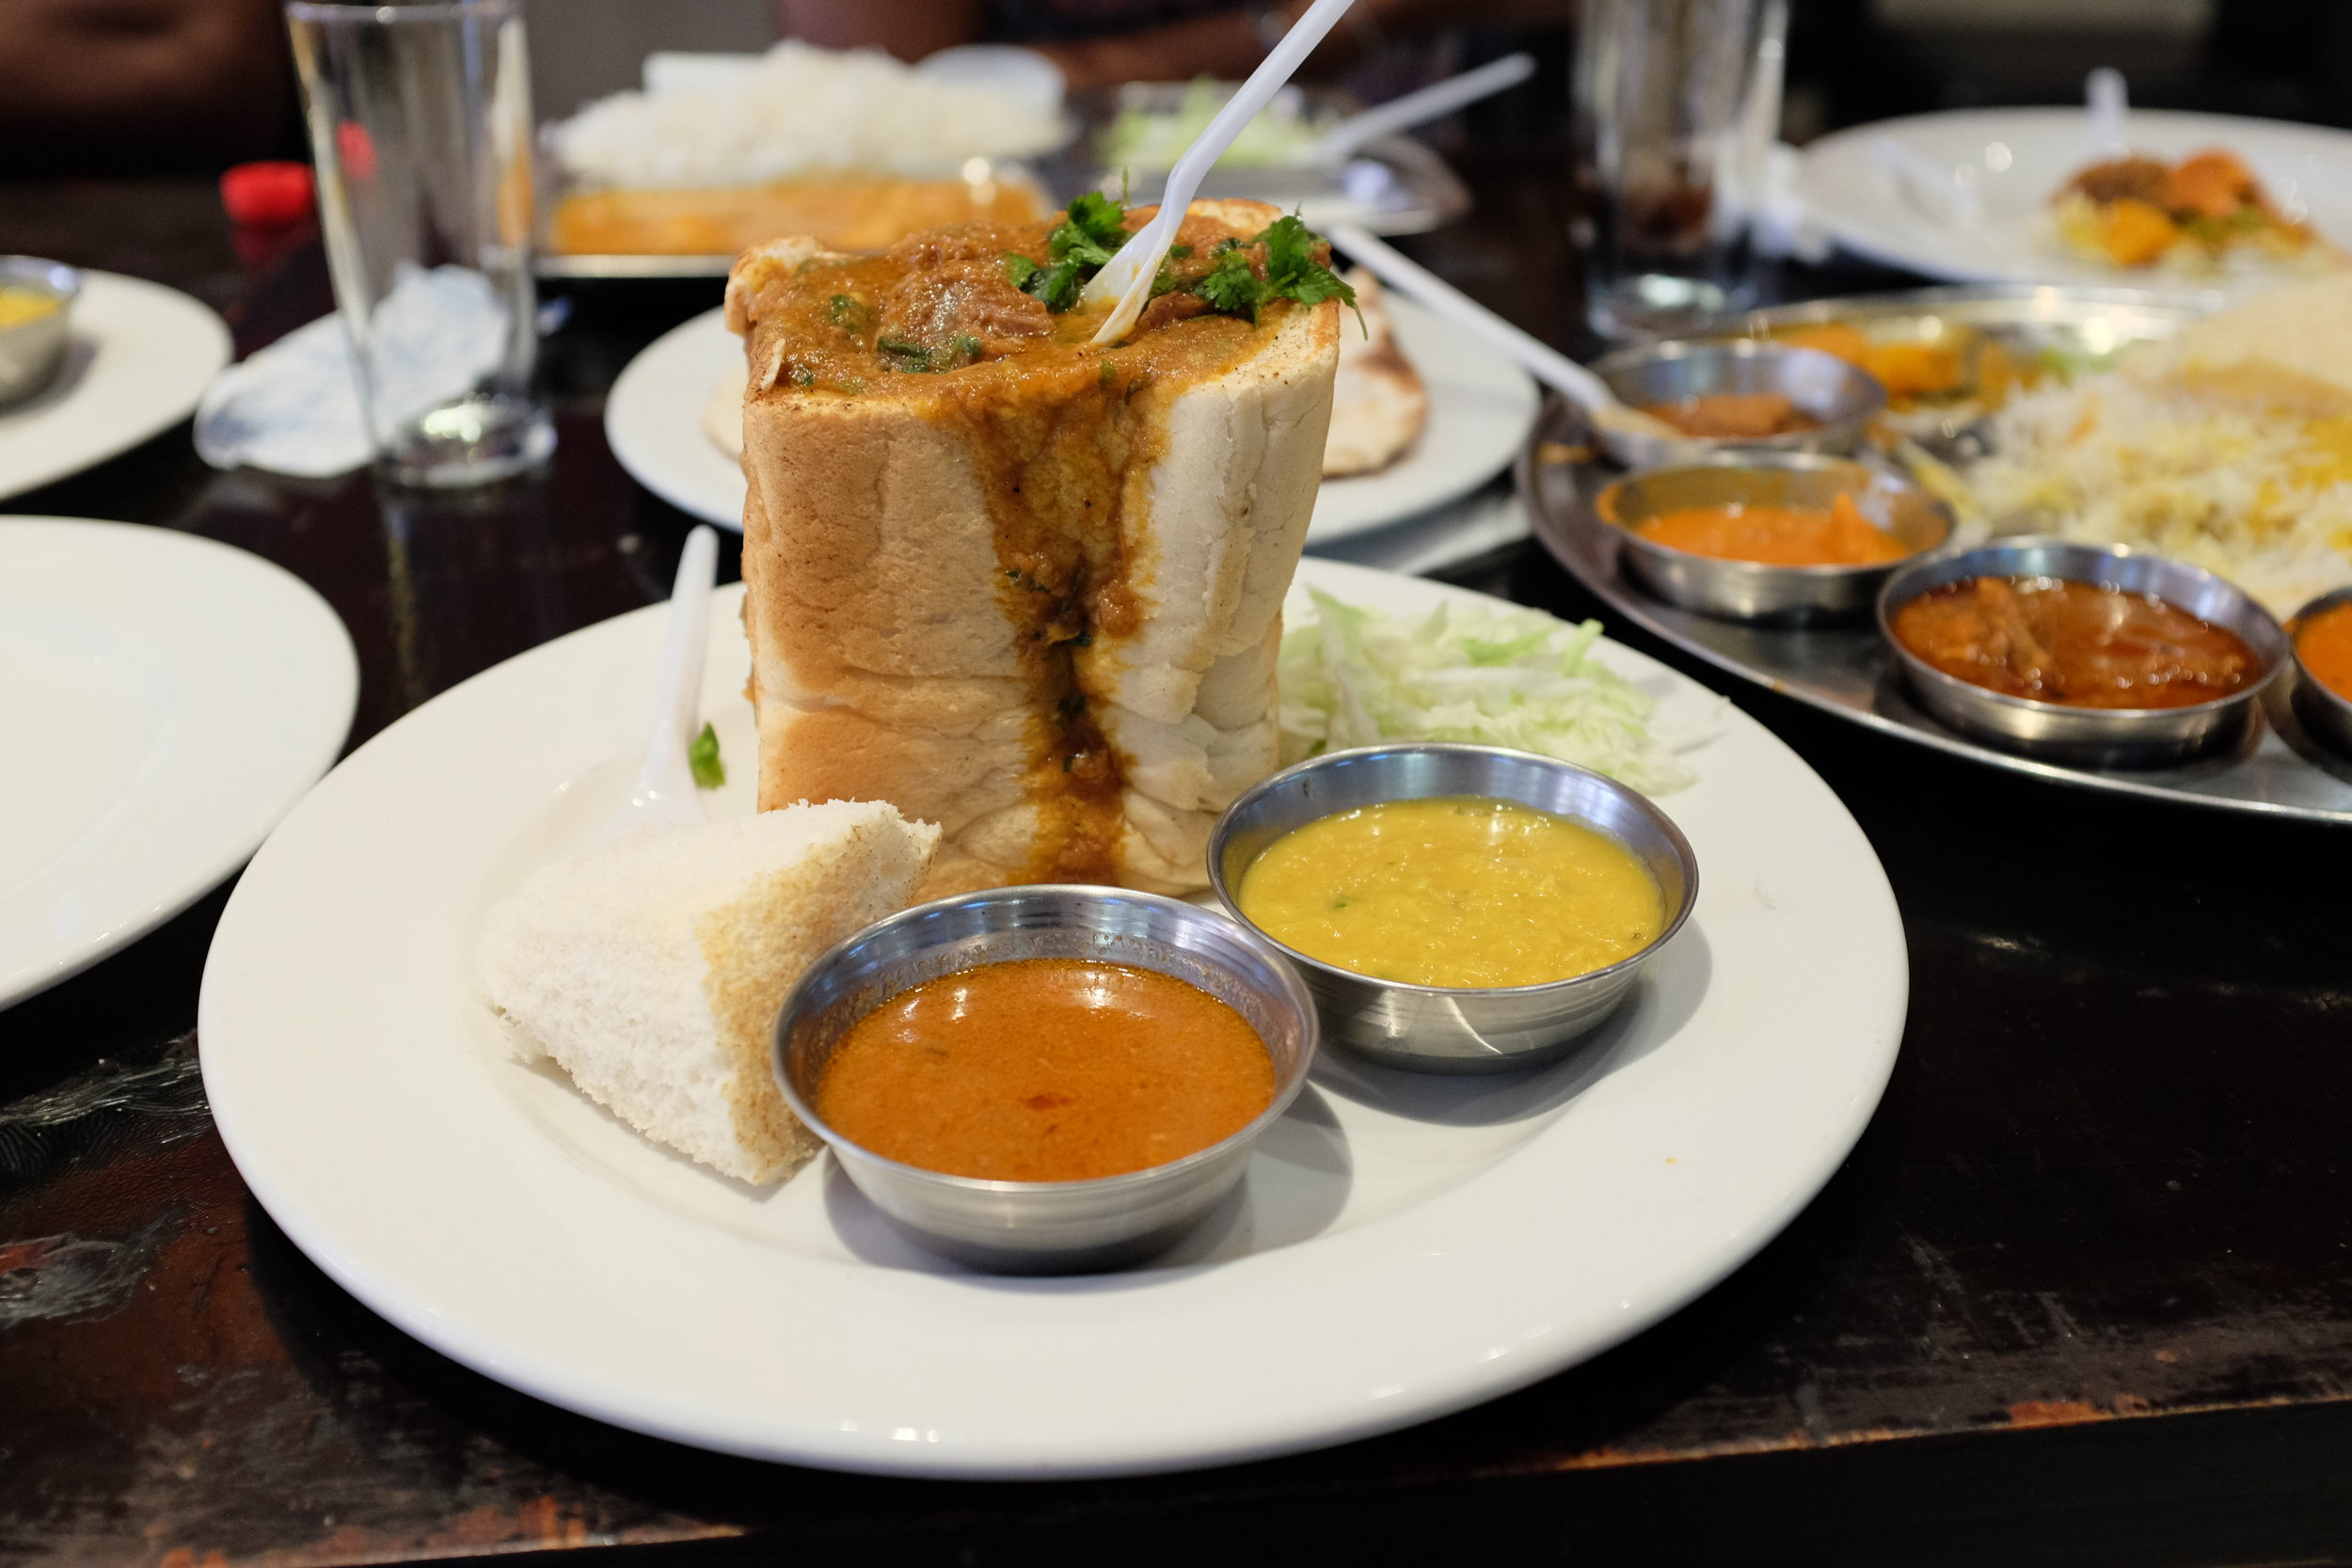 My first bunny chow in Cape Town! Along with dal and gravy.